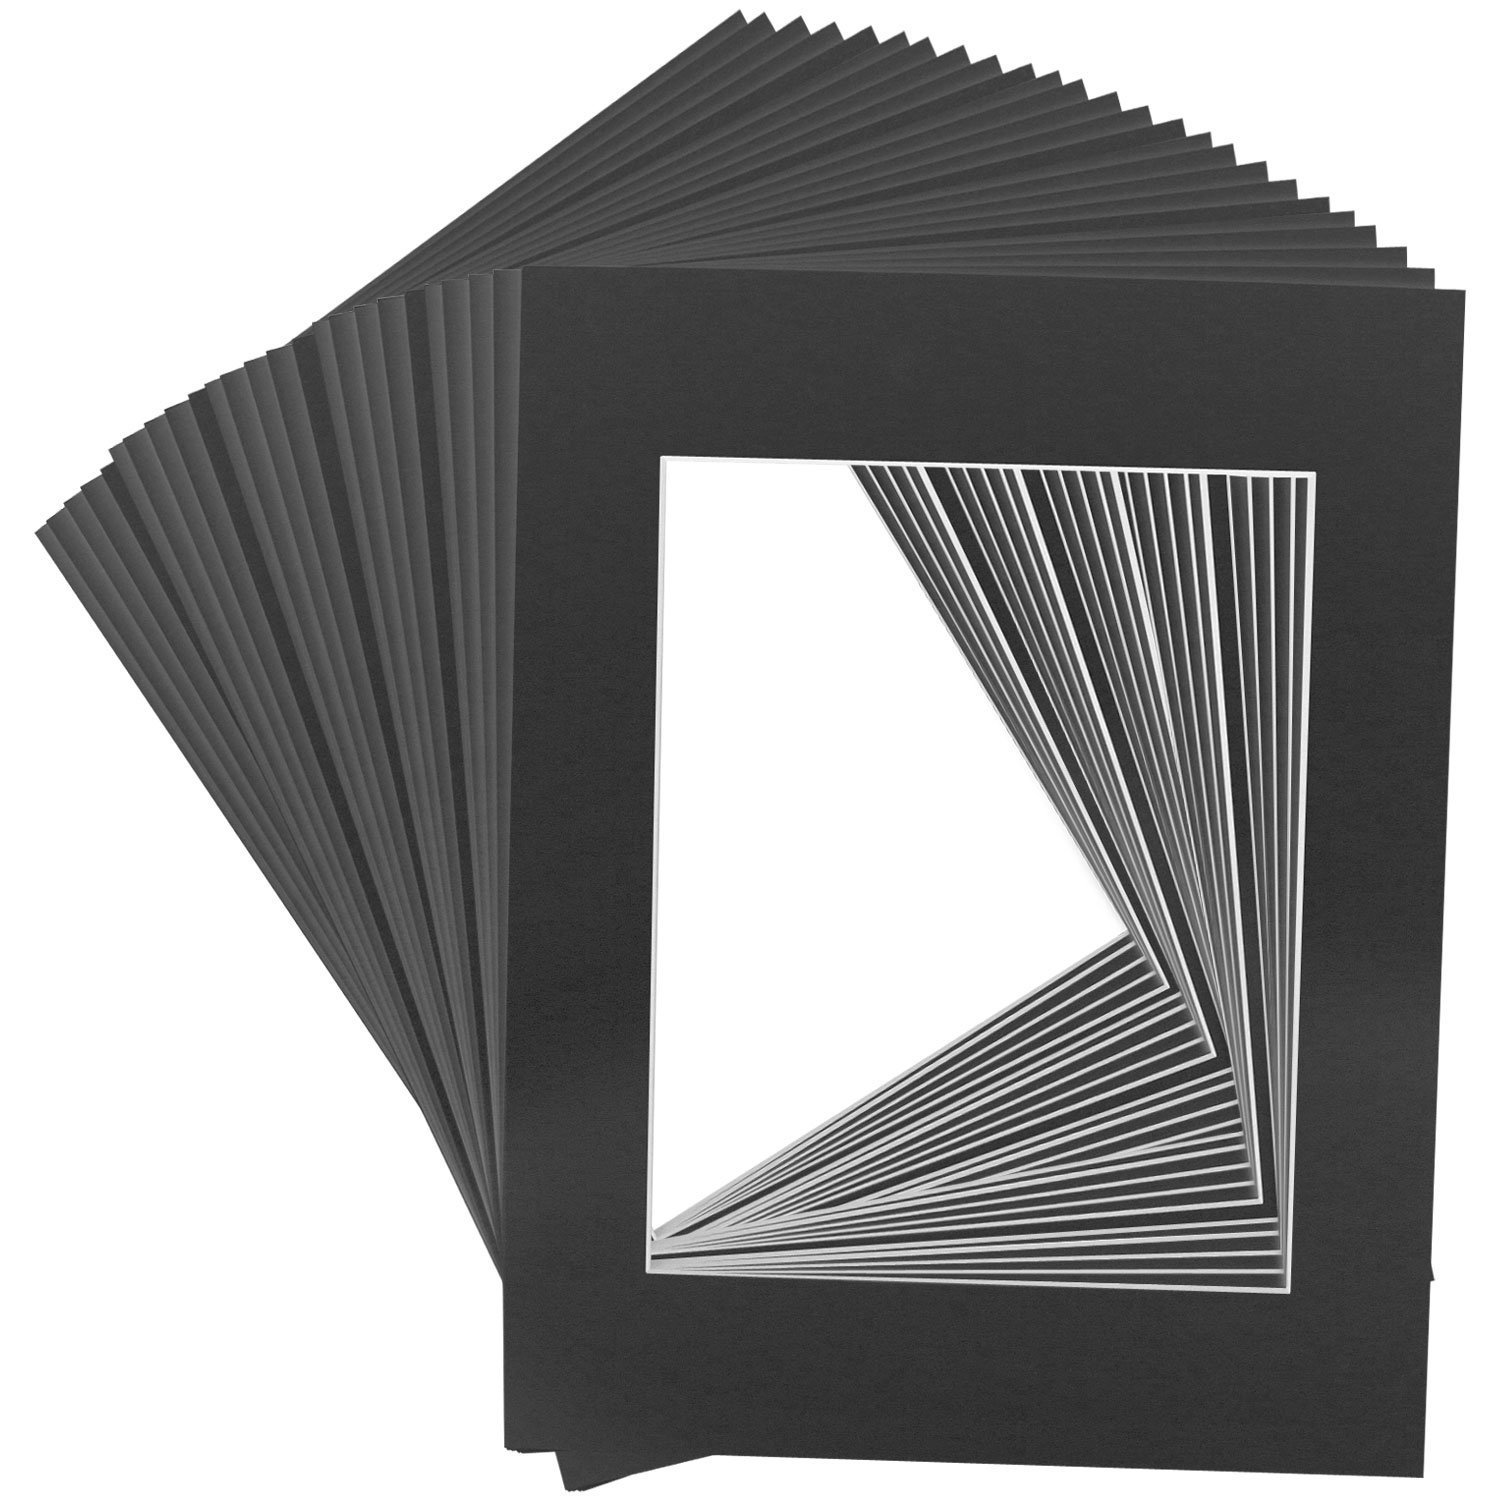 Golden State Art, Pack of 25, 16x20 Black Picture Mats Mattes with White Core Bevel Cut for 11x14 Photo by Golden State Art